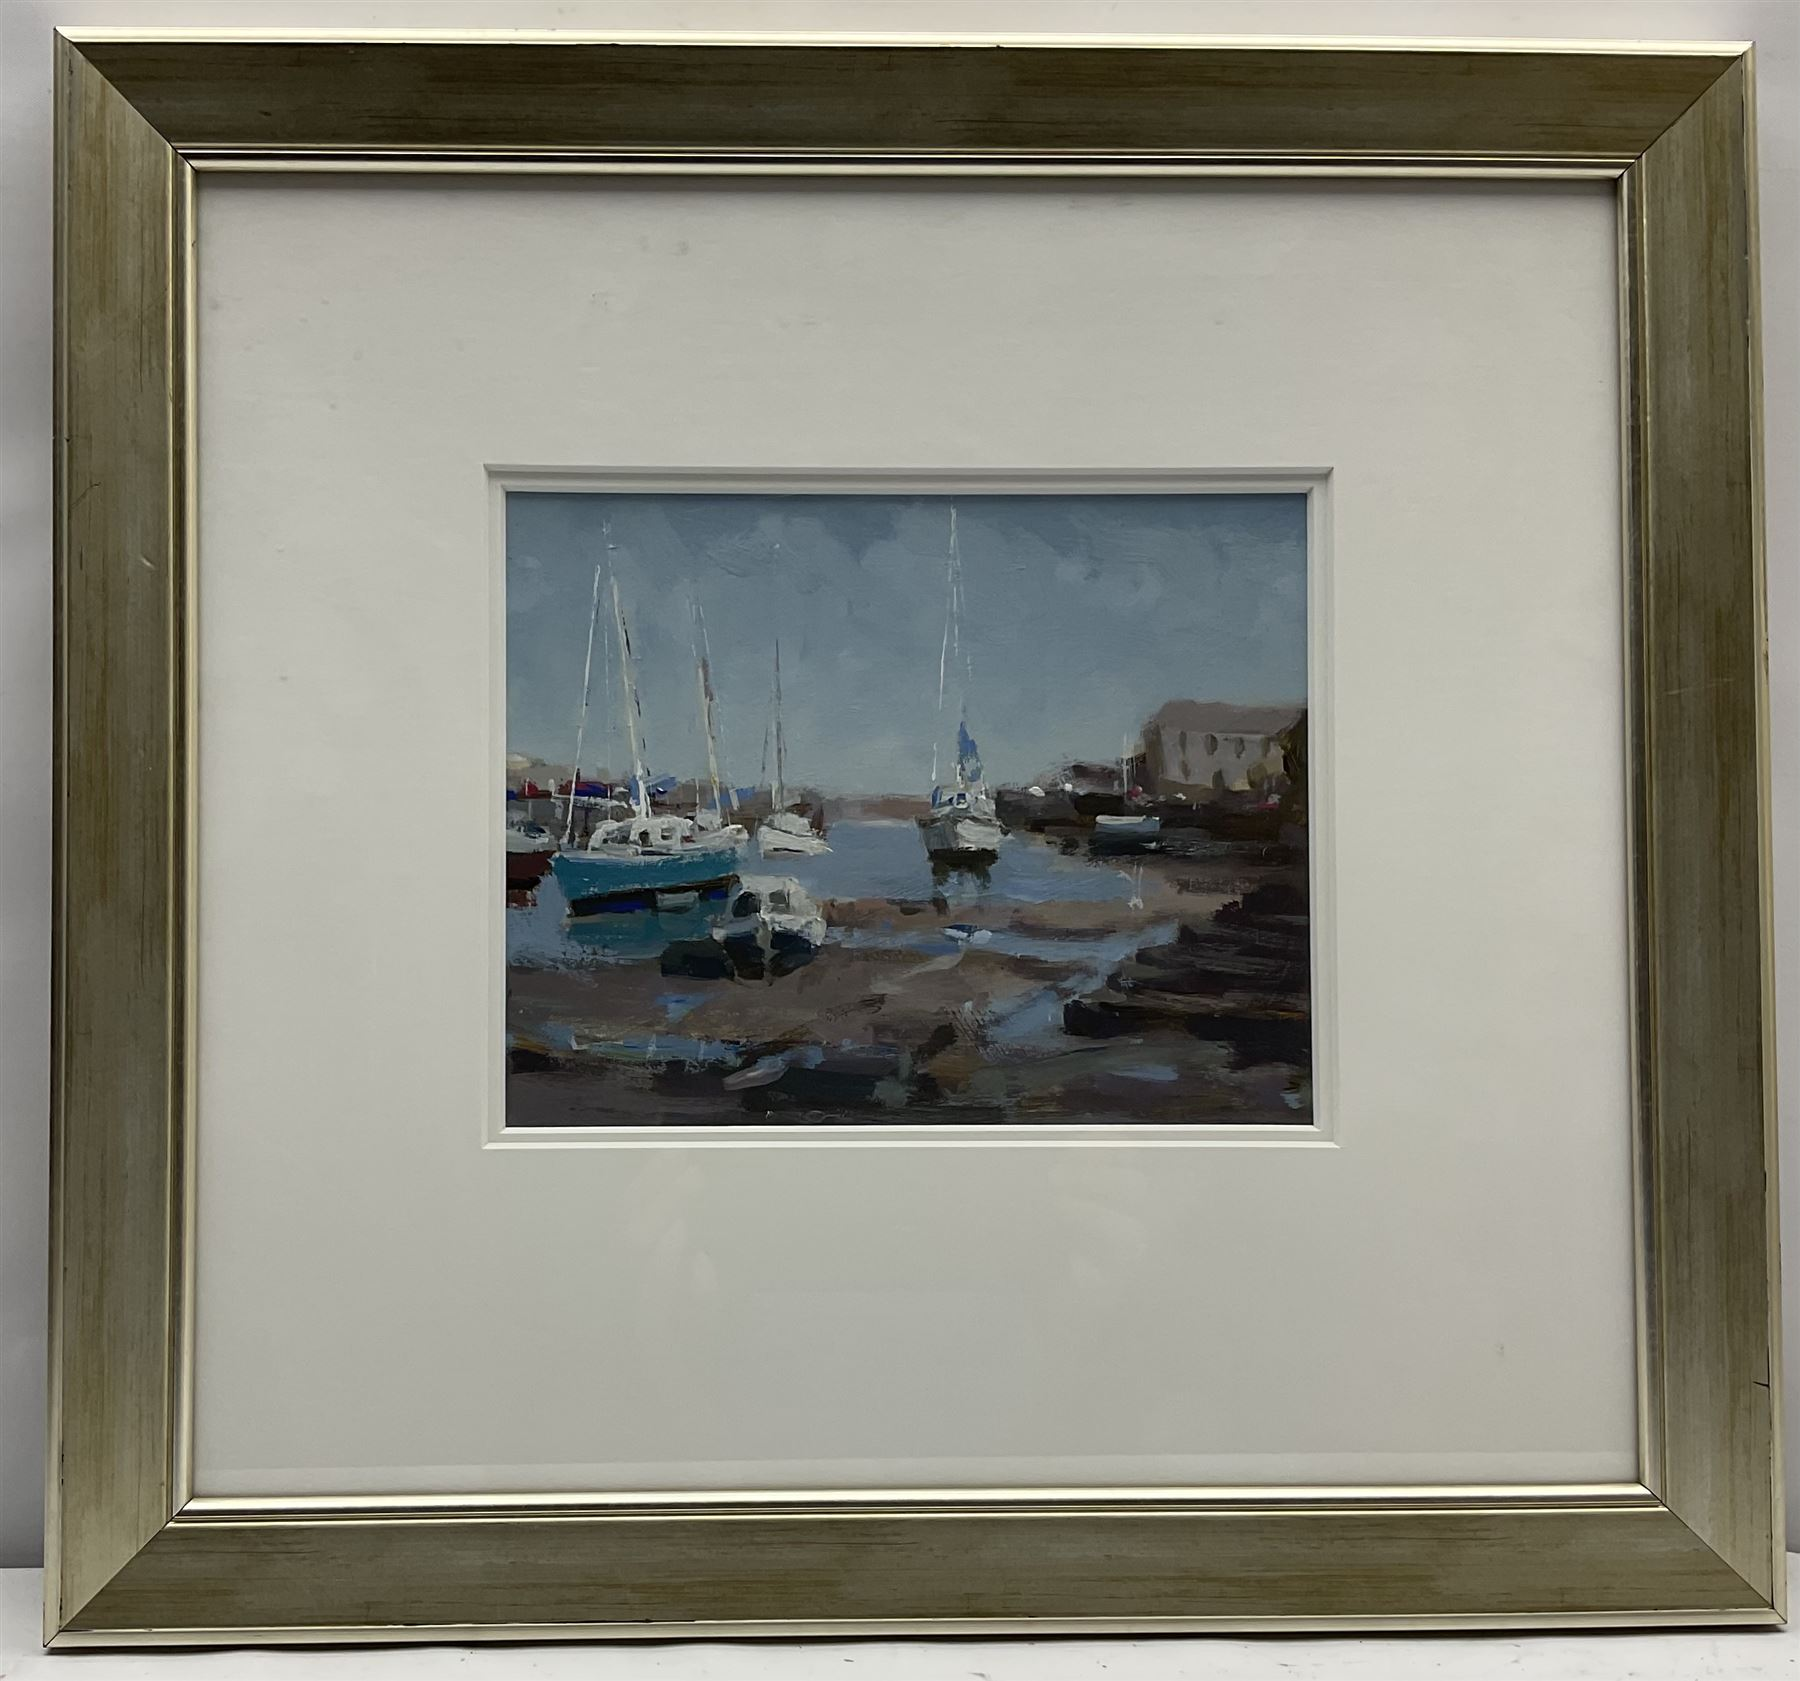 John Boyce (British 1938-): Yachts in the Harbour at Low Tide - Image 2 of 3